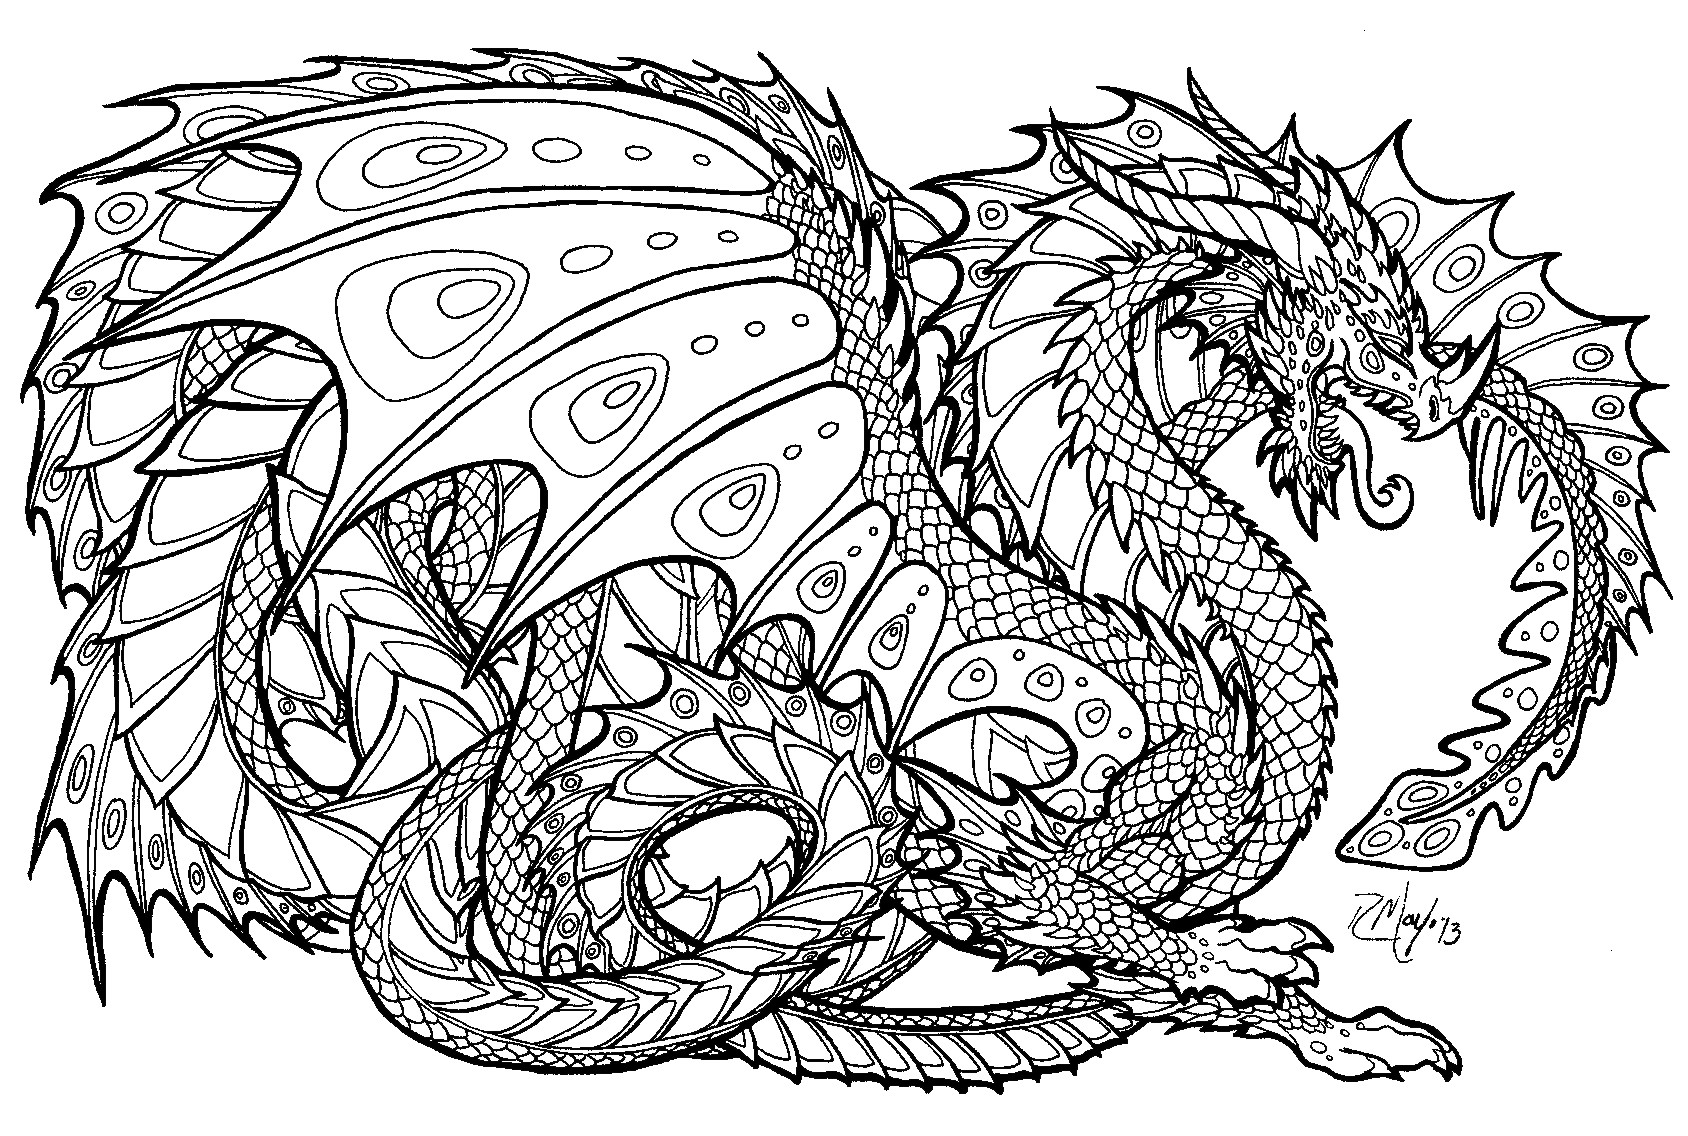 Best ideas about Coloring Pages For Adults Only . Save or Pin Realistic People Coloring Pages ly Coloring Pages 6535 Now.